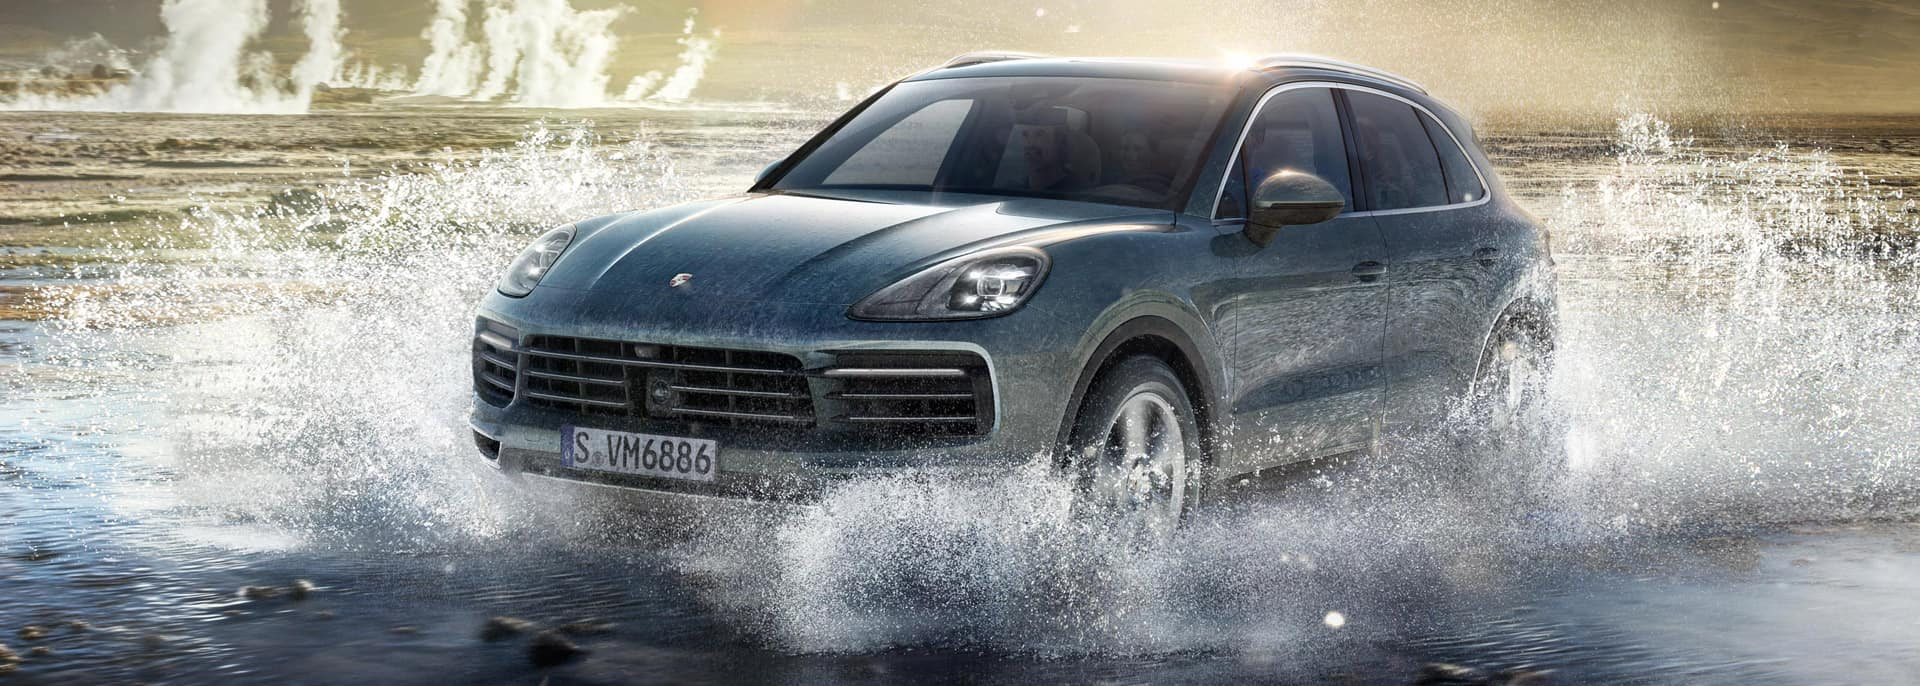 Compare The Porsche Cayenne Vs Audi Q Porsche Hawaii - Audi hawaii